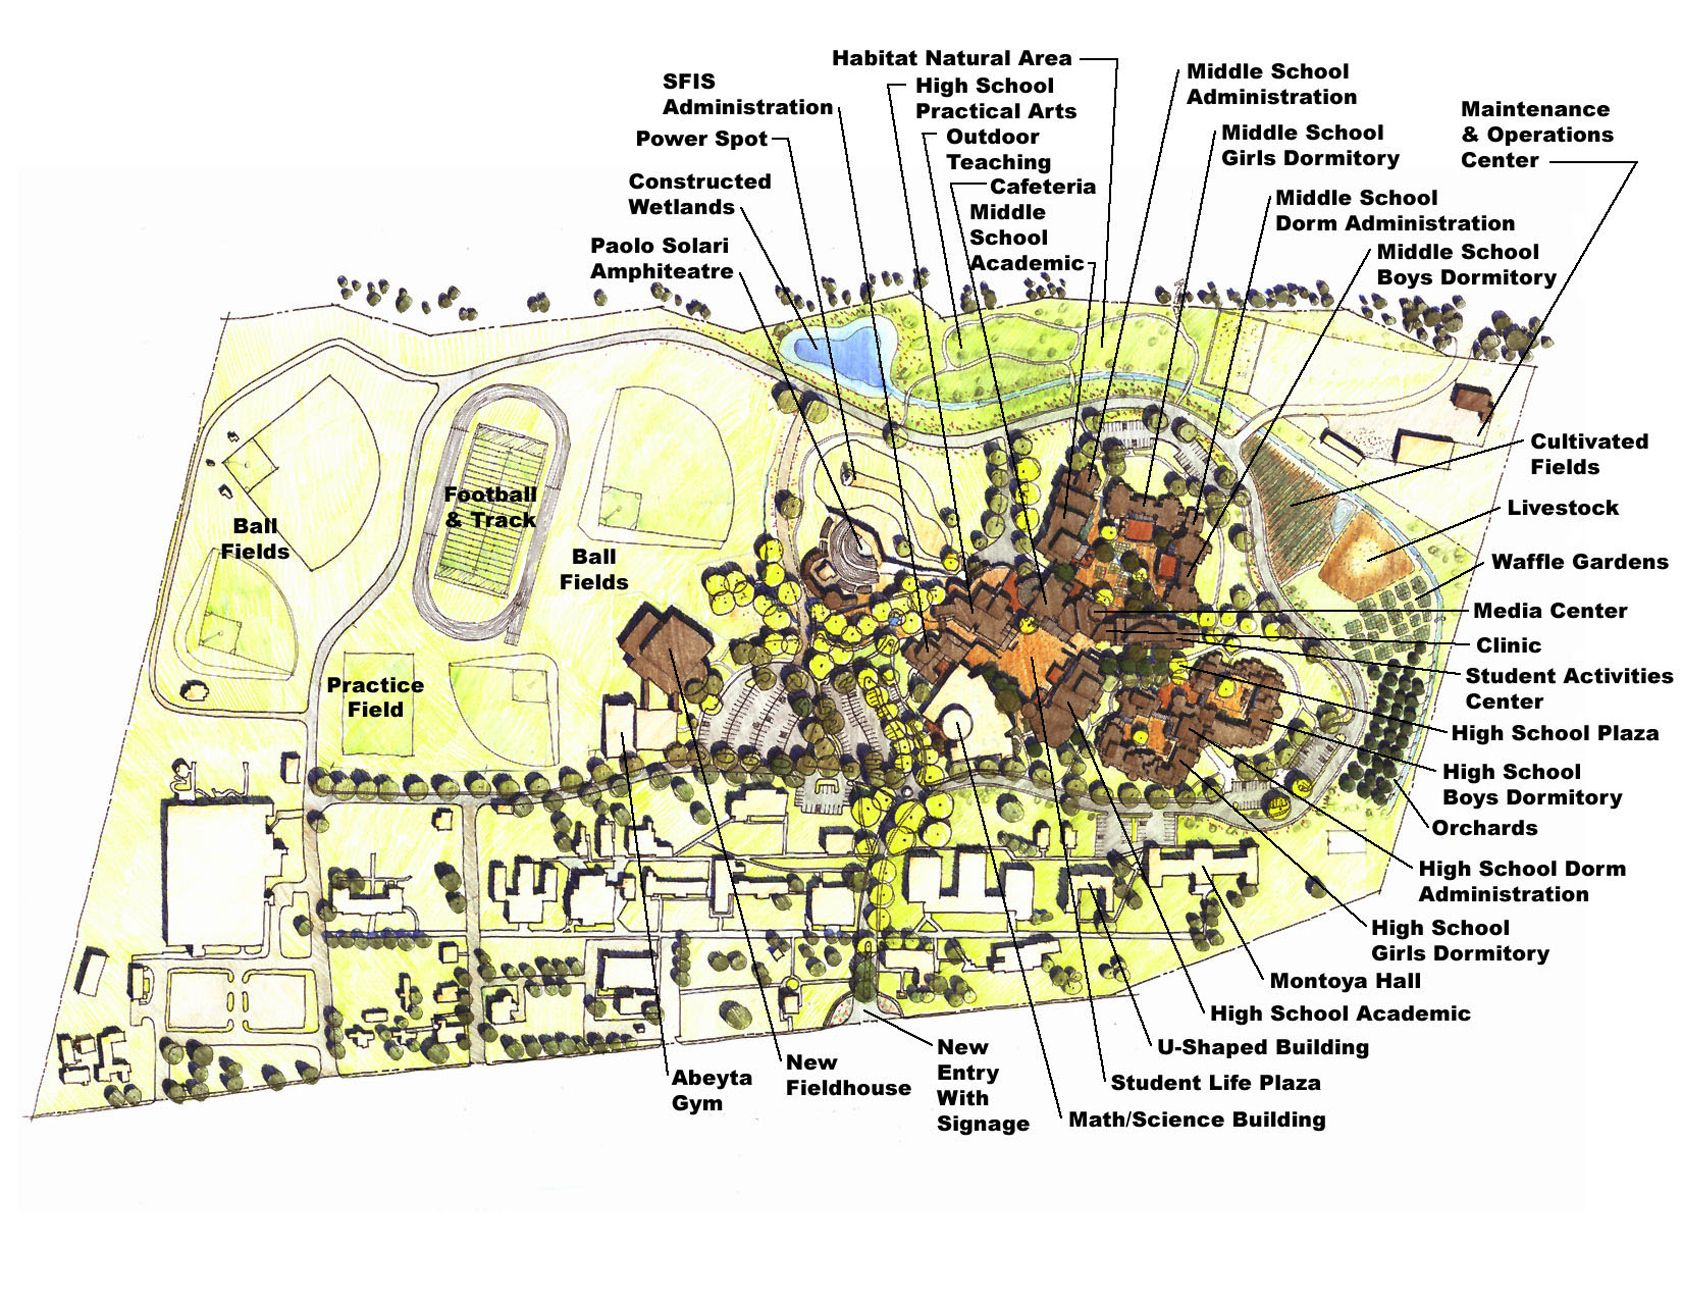 Campus Master Plan   Campus   Santa fe indian , Master ... on valencia college map, hamilton college map, san francisco state university map, northwest missouri state university map, utah college map, tarkio college map, san luis obispo college map, california college map, southern connecticut state university map, saint paul college map, grand canyon college map, florida college map, hillsborough community college map, united states college map, greenville college map, weatherford college map, mississippi college map, georgia college map, austin college map, st. augustine map,